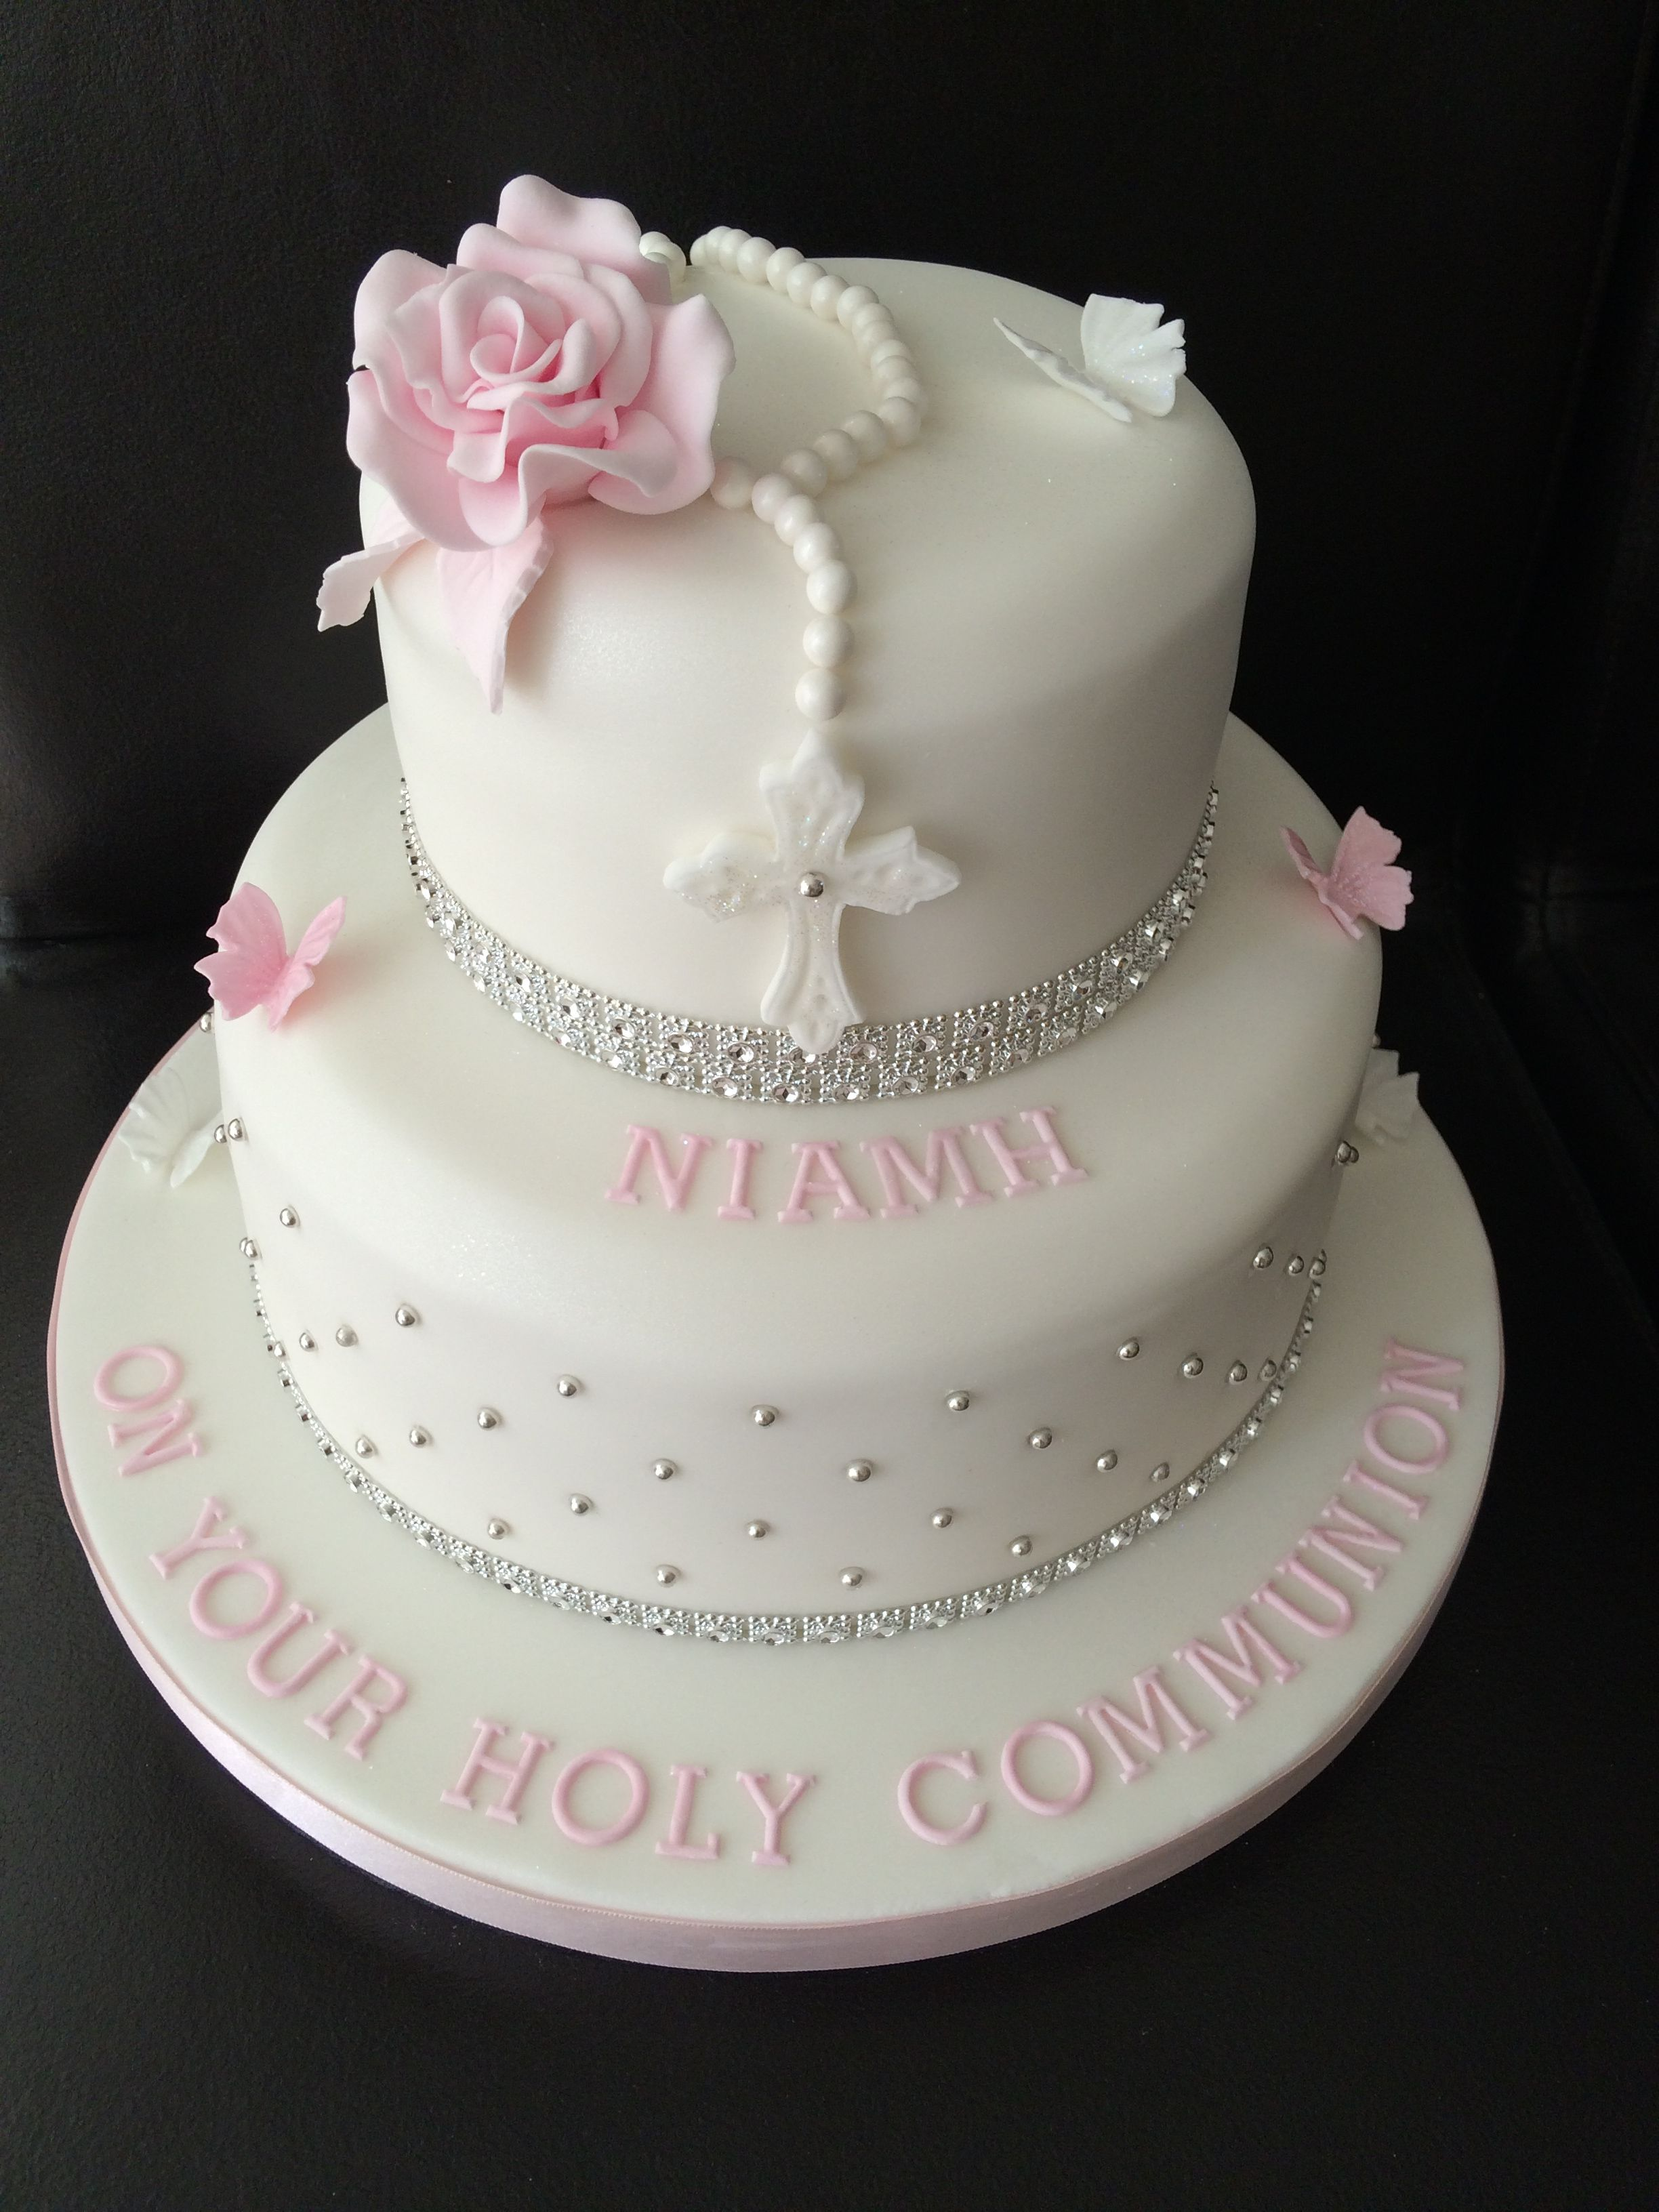 Holy Communion Cake More First Communion Cakes First Holy